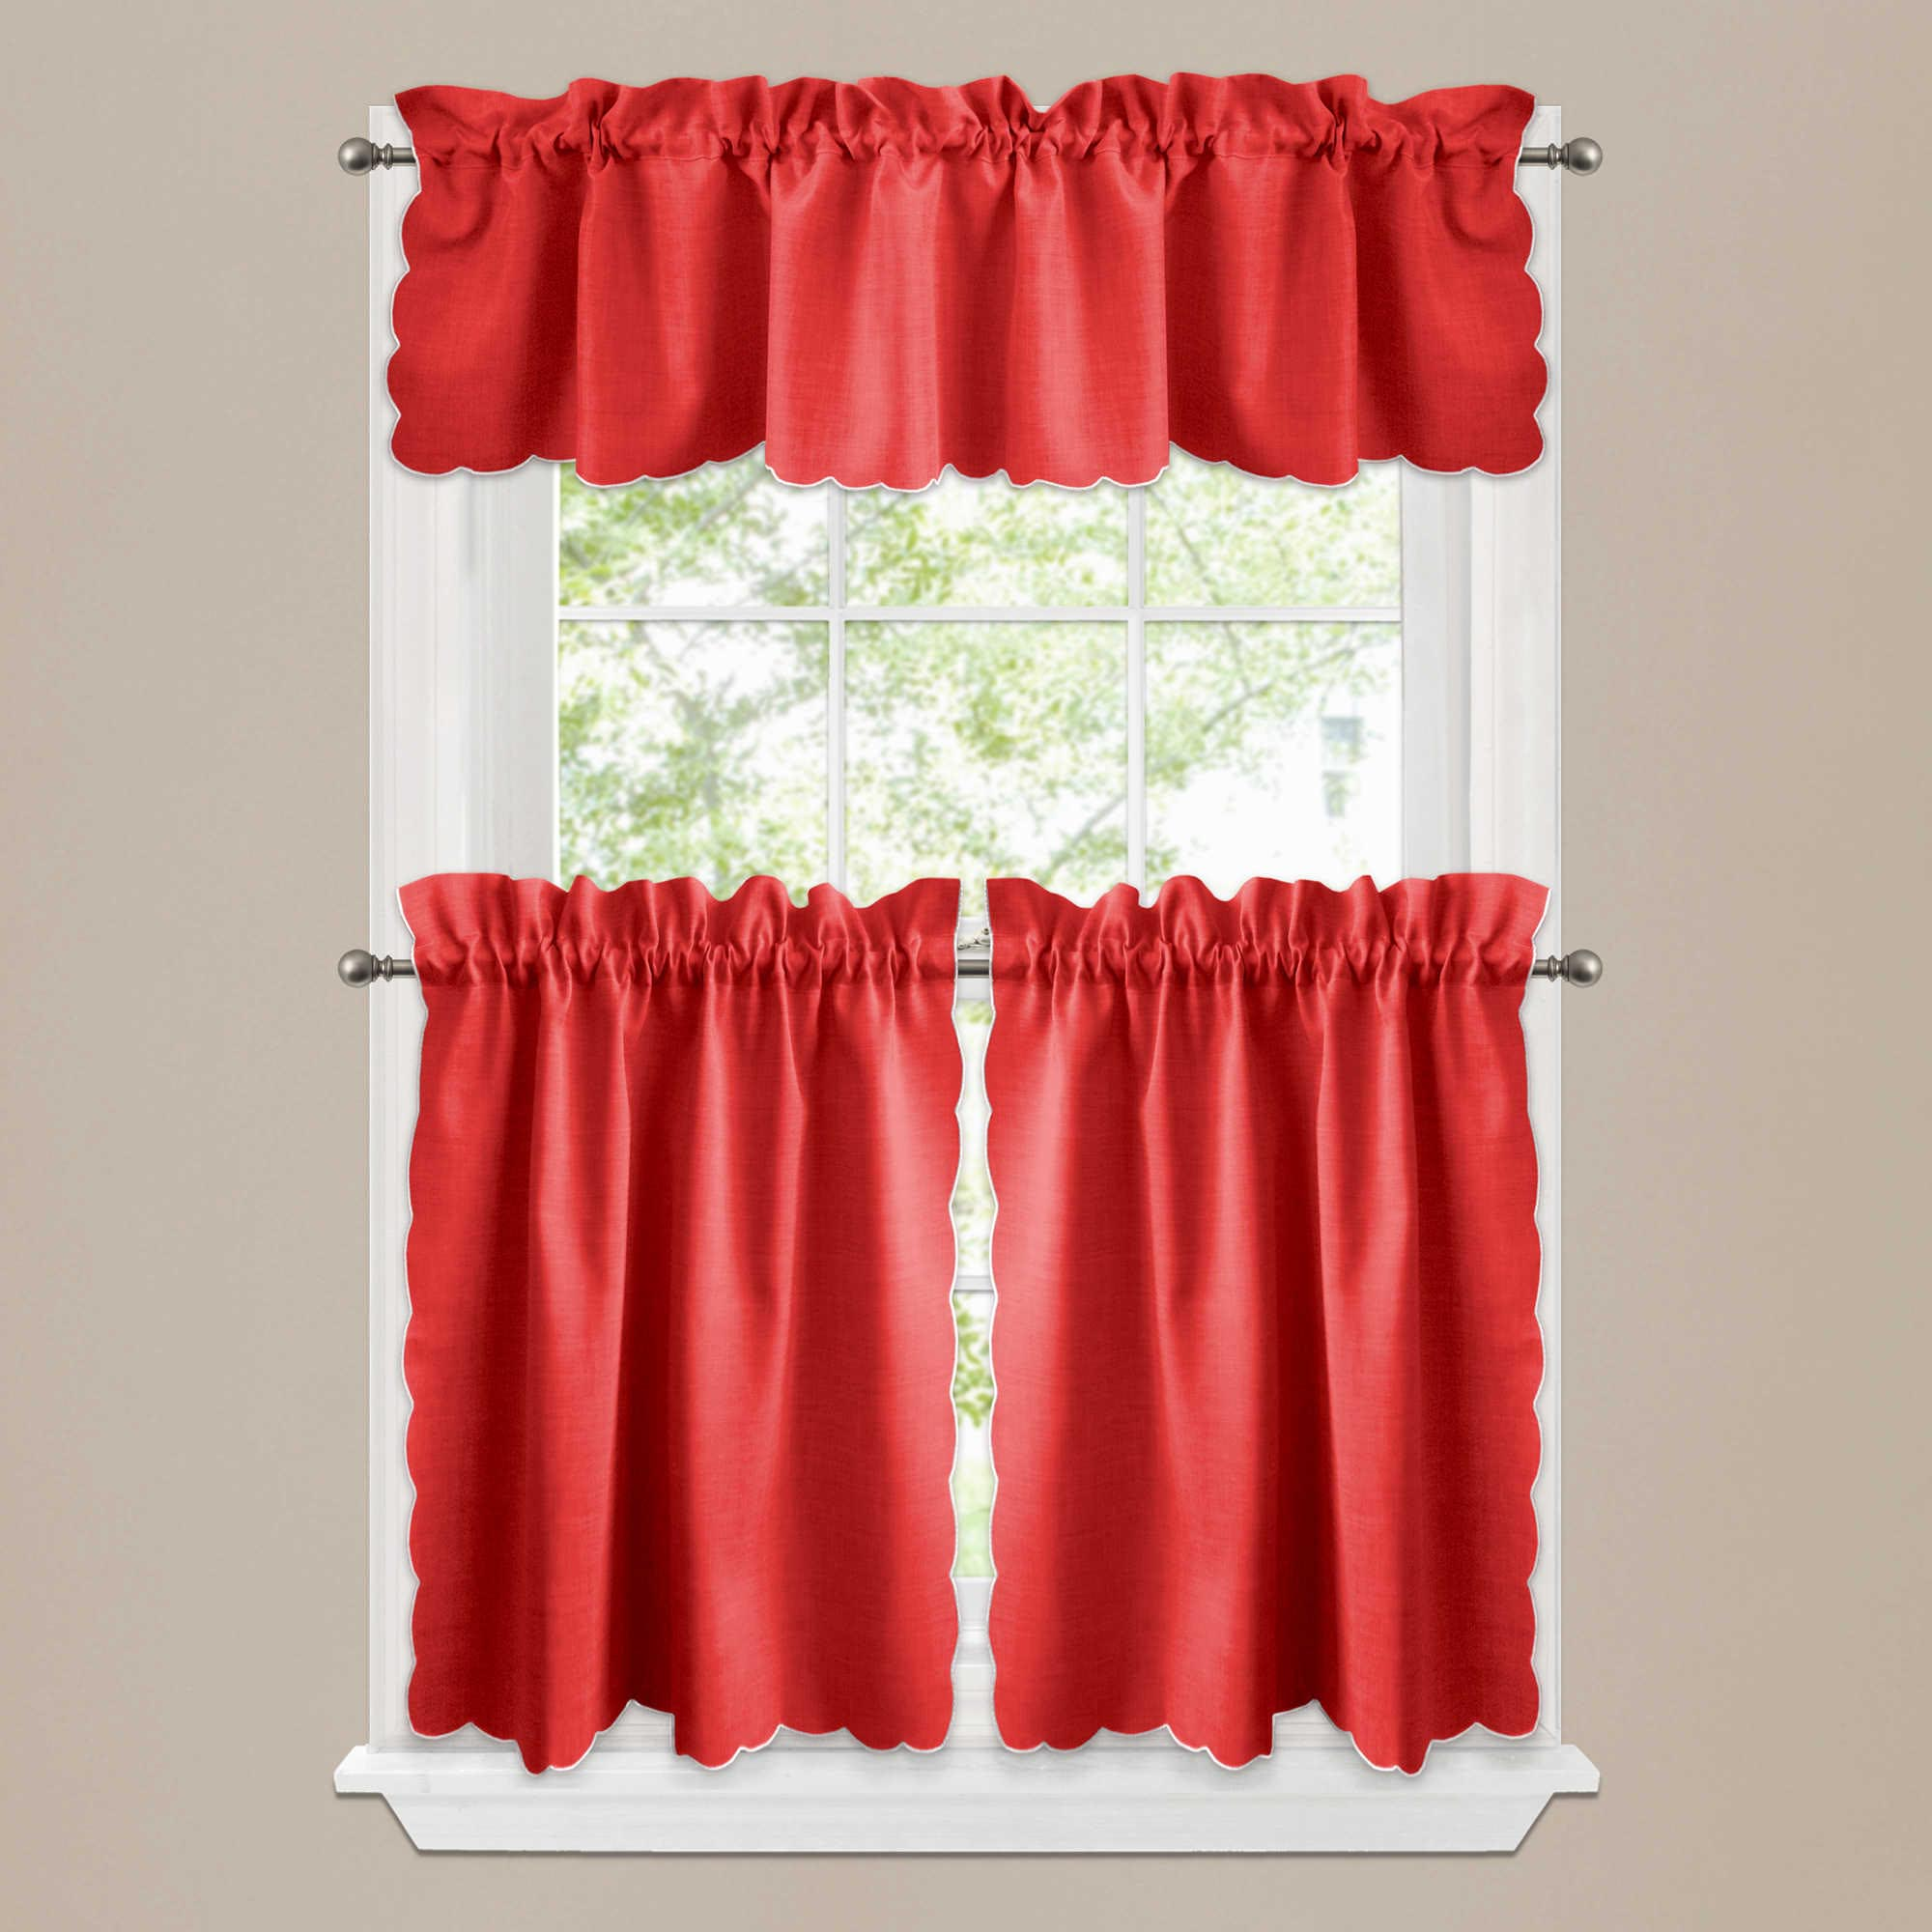 Types of valances for kitchen window treatments design ideas for Valance curtains for kitchen